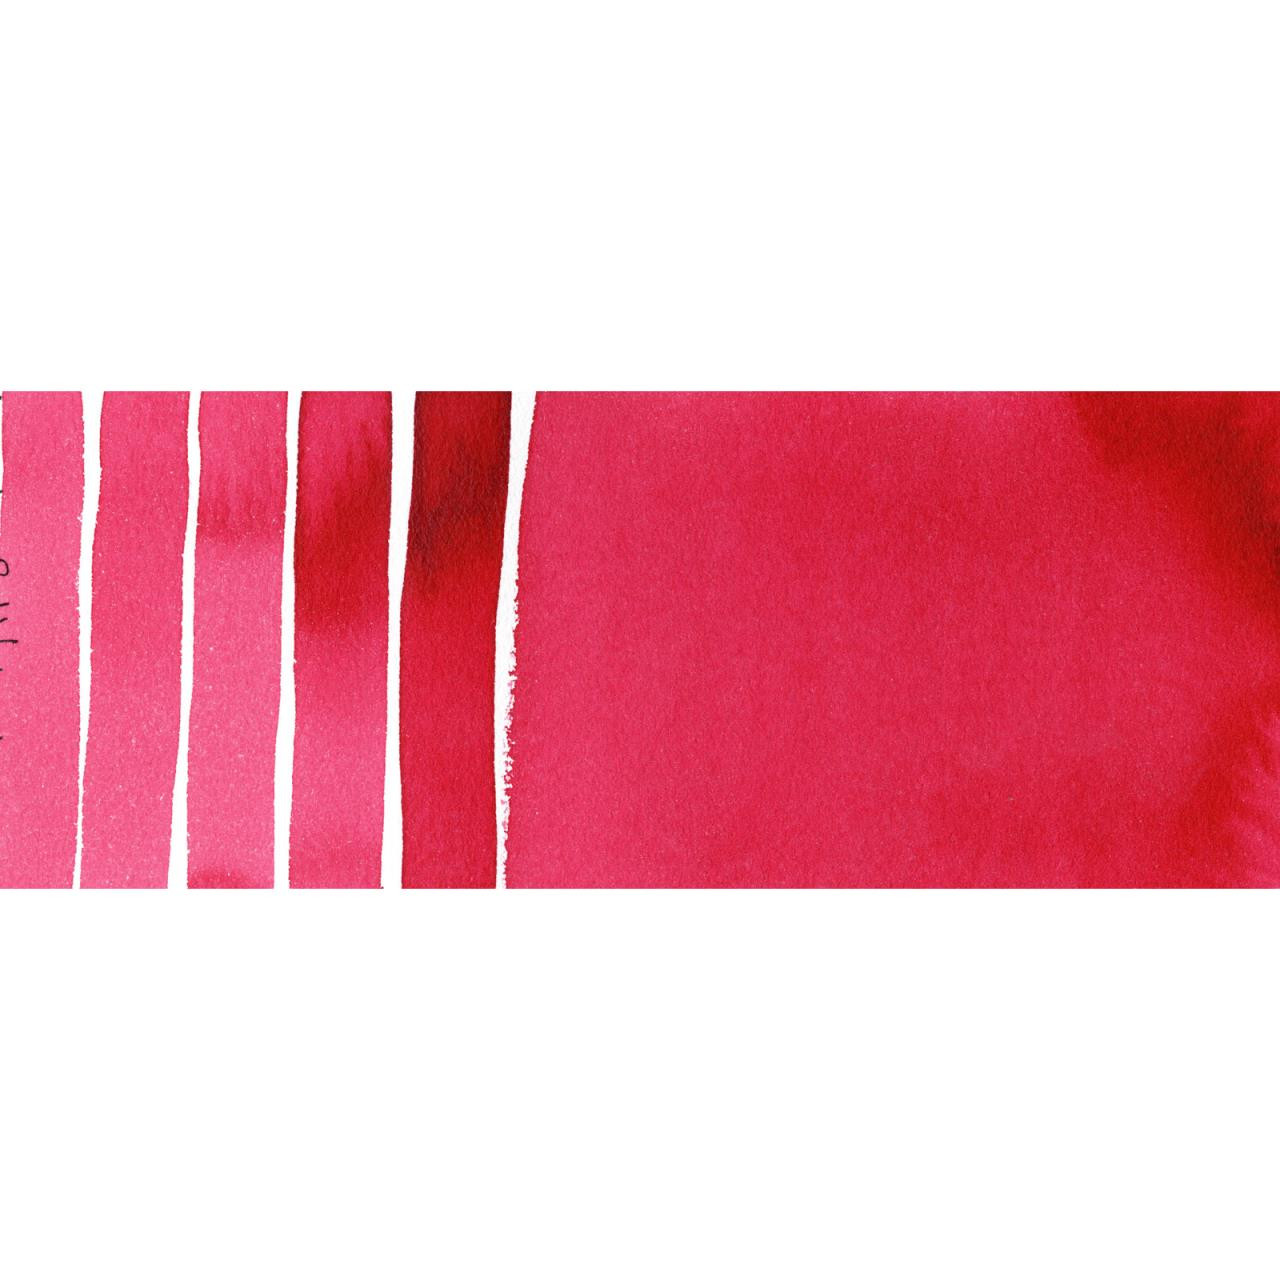 Quinacridone Red, DANIEL SMITH Extra Fine Watercolors 5ml Tubes -